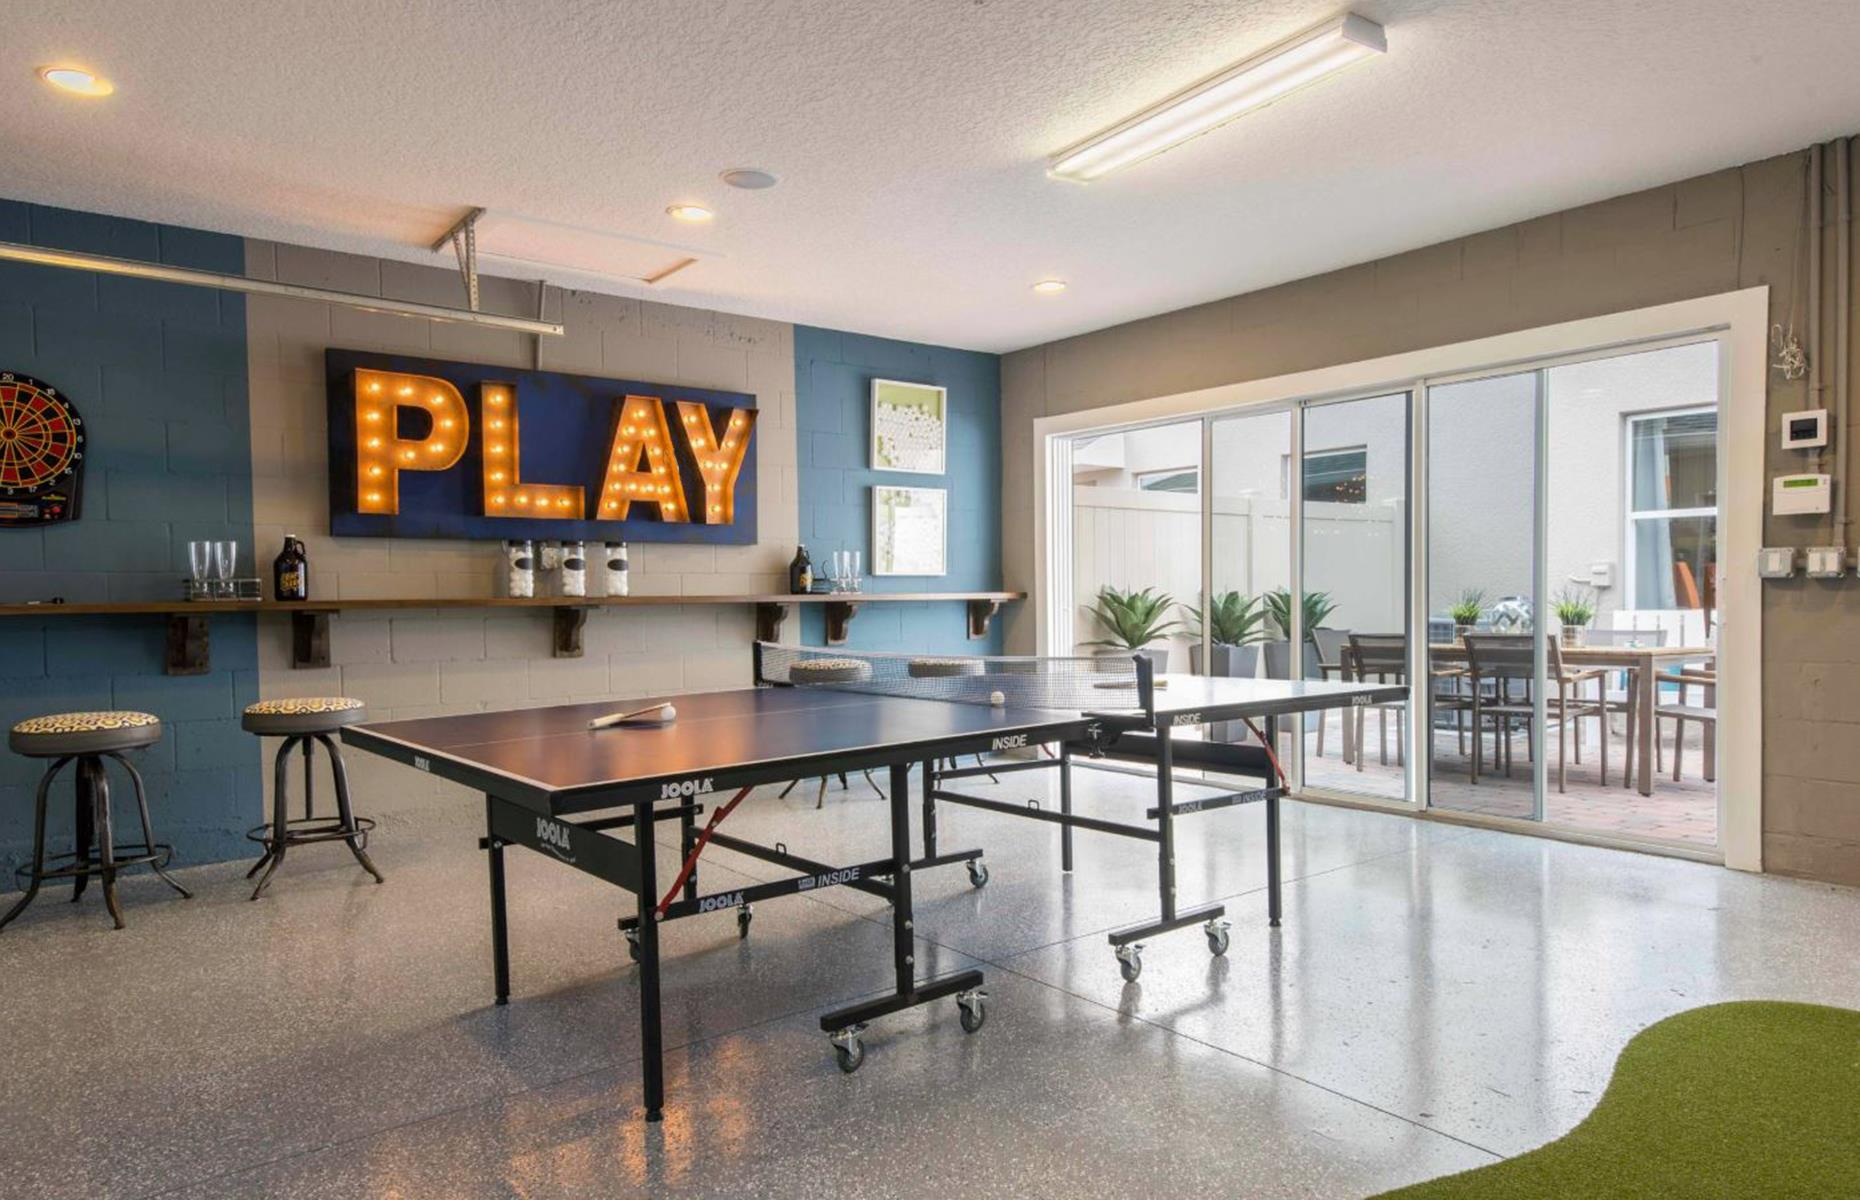 8 projects you can do without planning permission